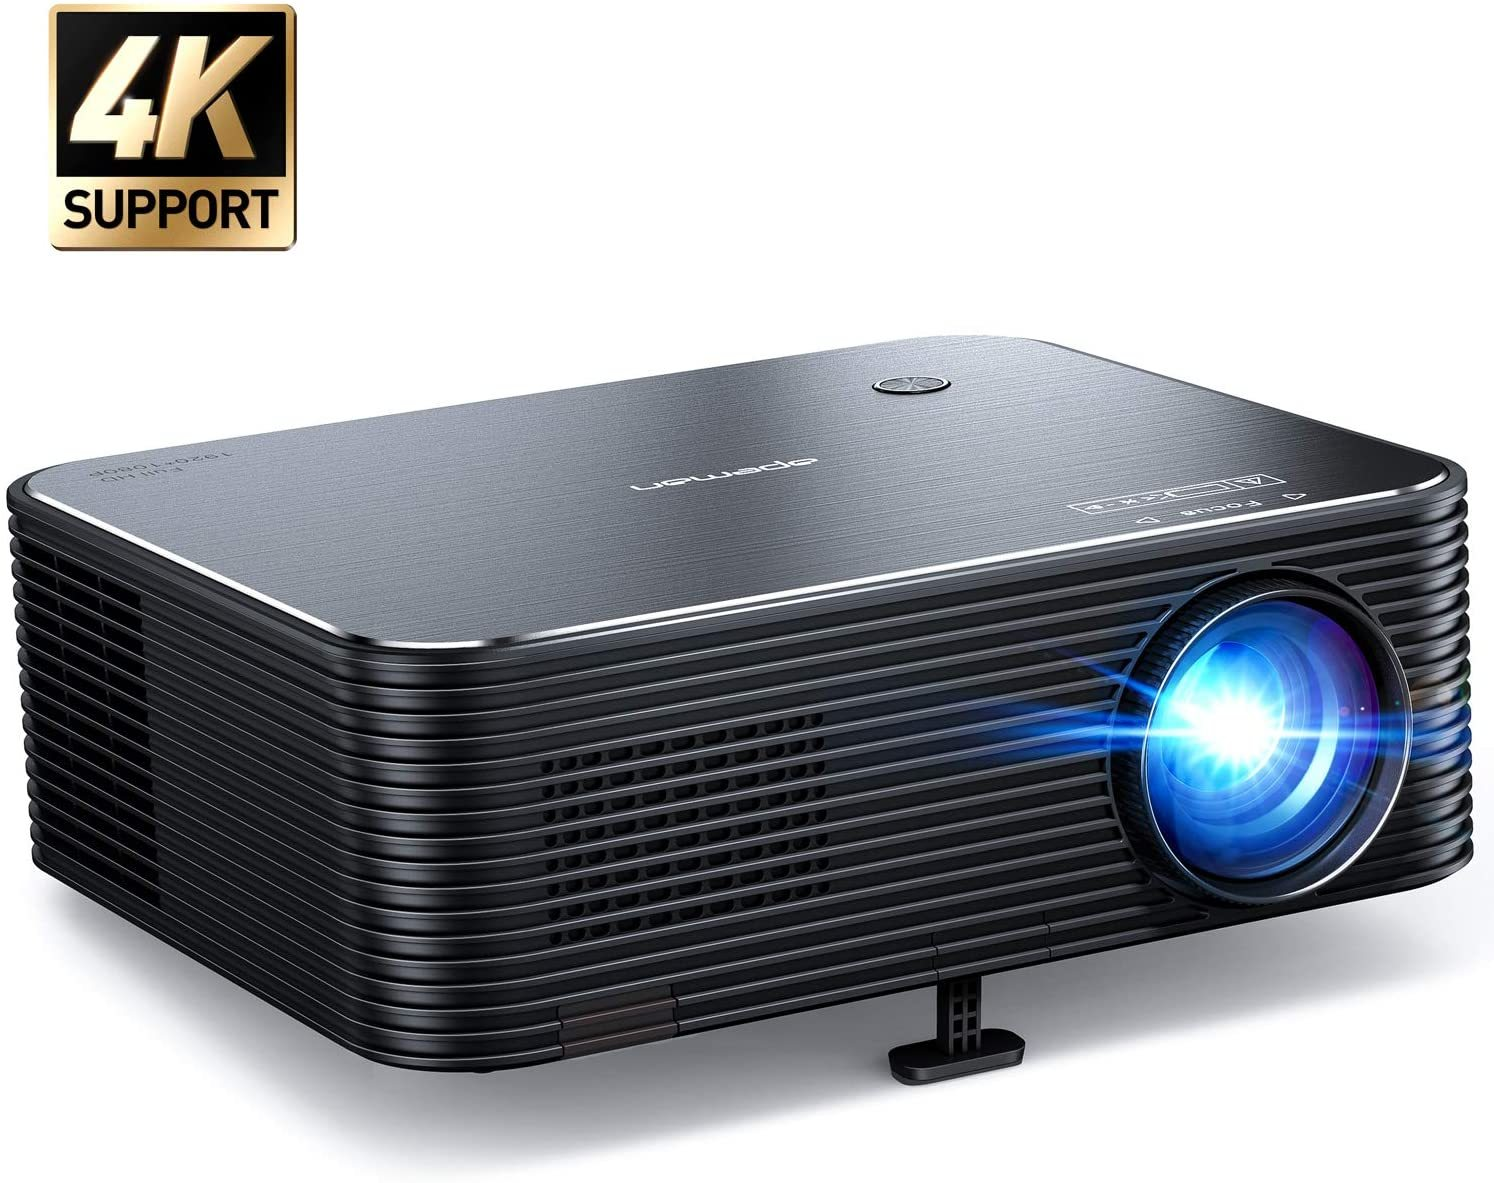 Projector, APEMAN Native 1080P HD Home Video Projector, Support 4K Movie, 300'' Display, Remote Electronic Keystone Correction, 50000hrs Life, for Phone/TV Stick/Computer/HDMI/Business Presentation